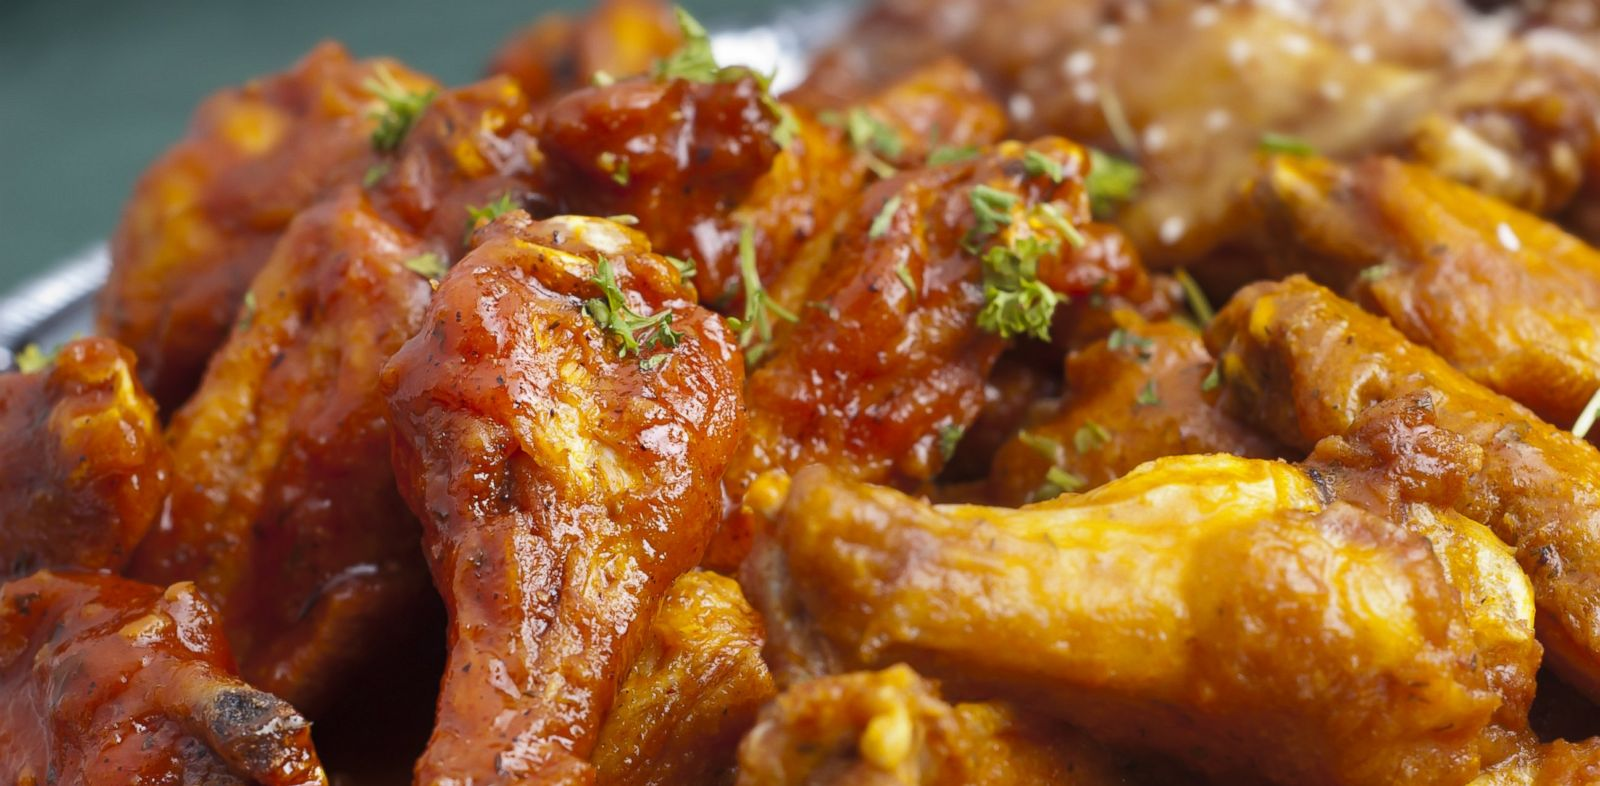 PHOTO: A study found people who eat boneless chicken wings consume 35 percent more calories.